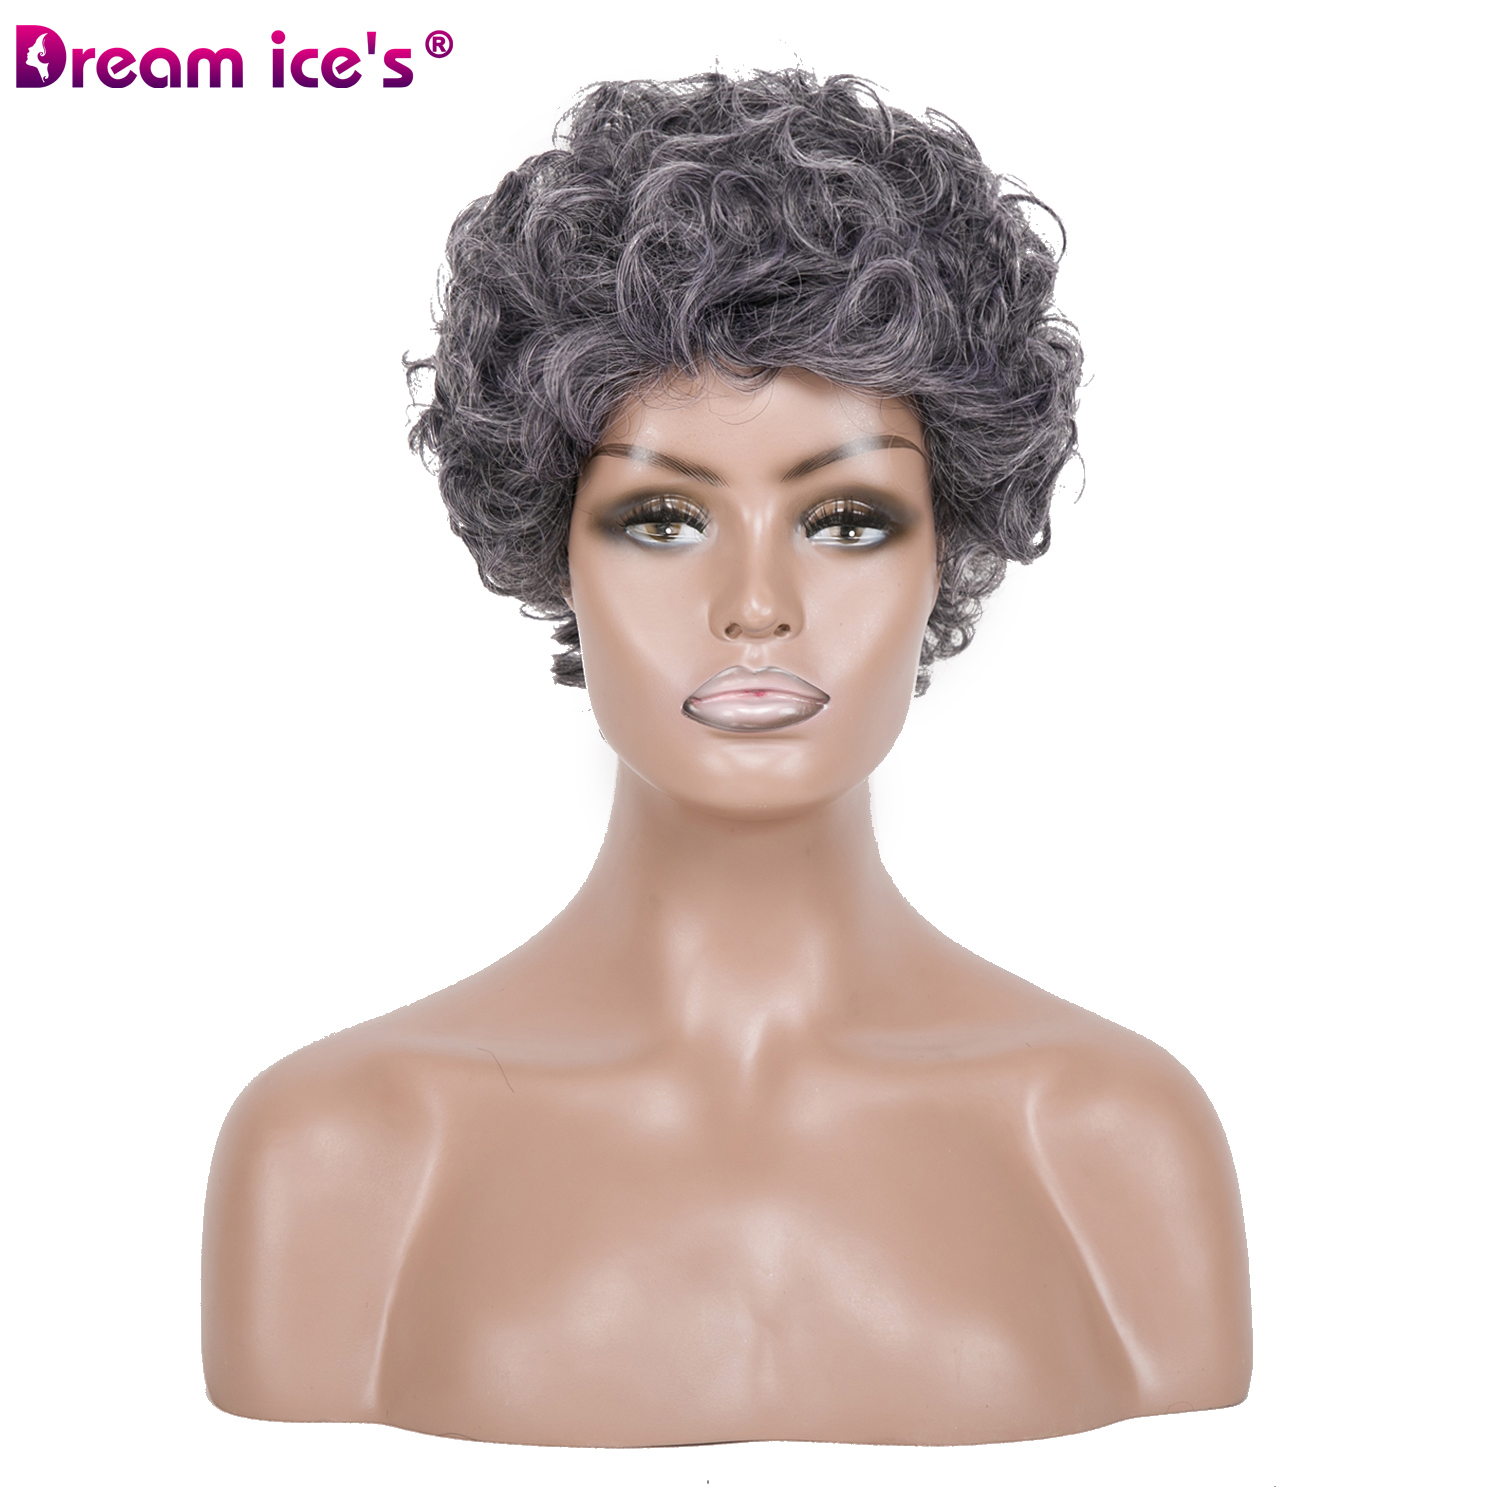 Synthetic Afro Short  Black Grey Wig Bouncy Curly High Temperature Fiber Wigs For Women Dream Ice?S